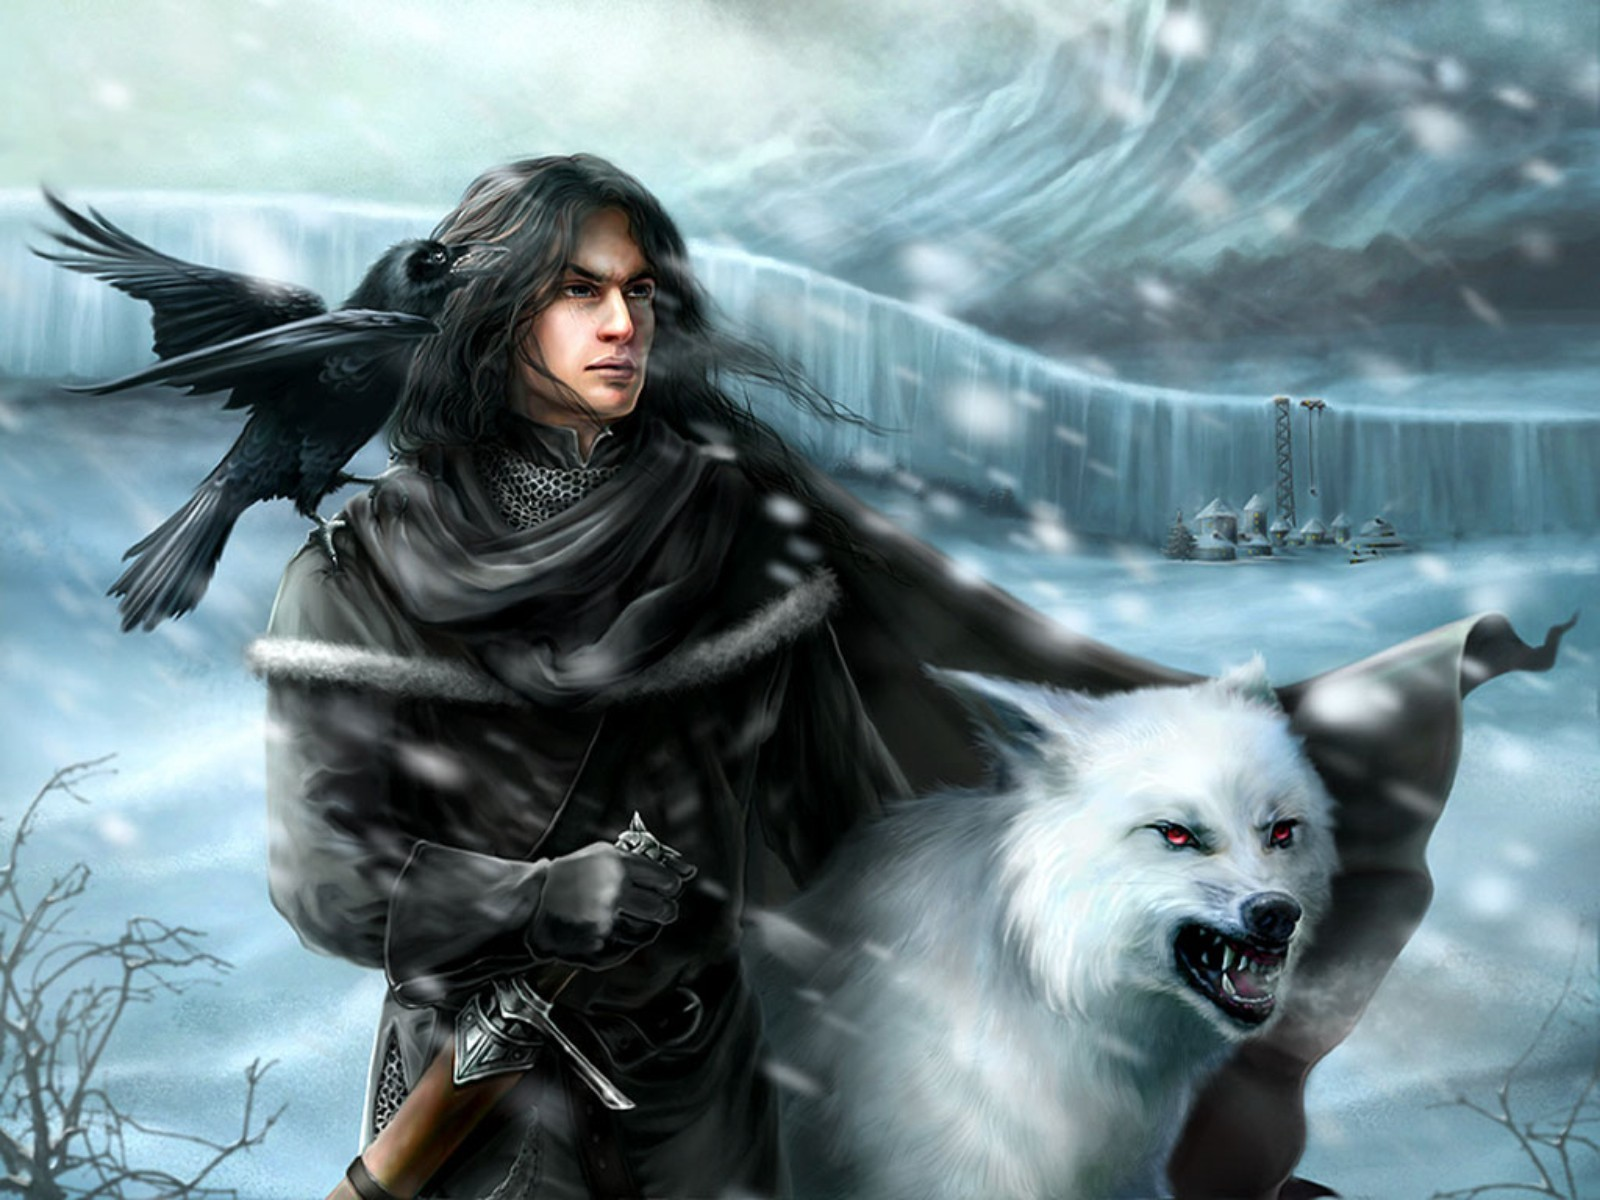 A Song Of Ice And Fire wallpaper background 1600x1200